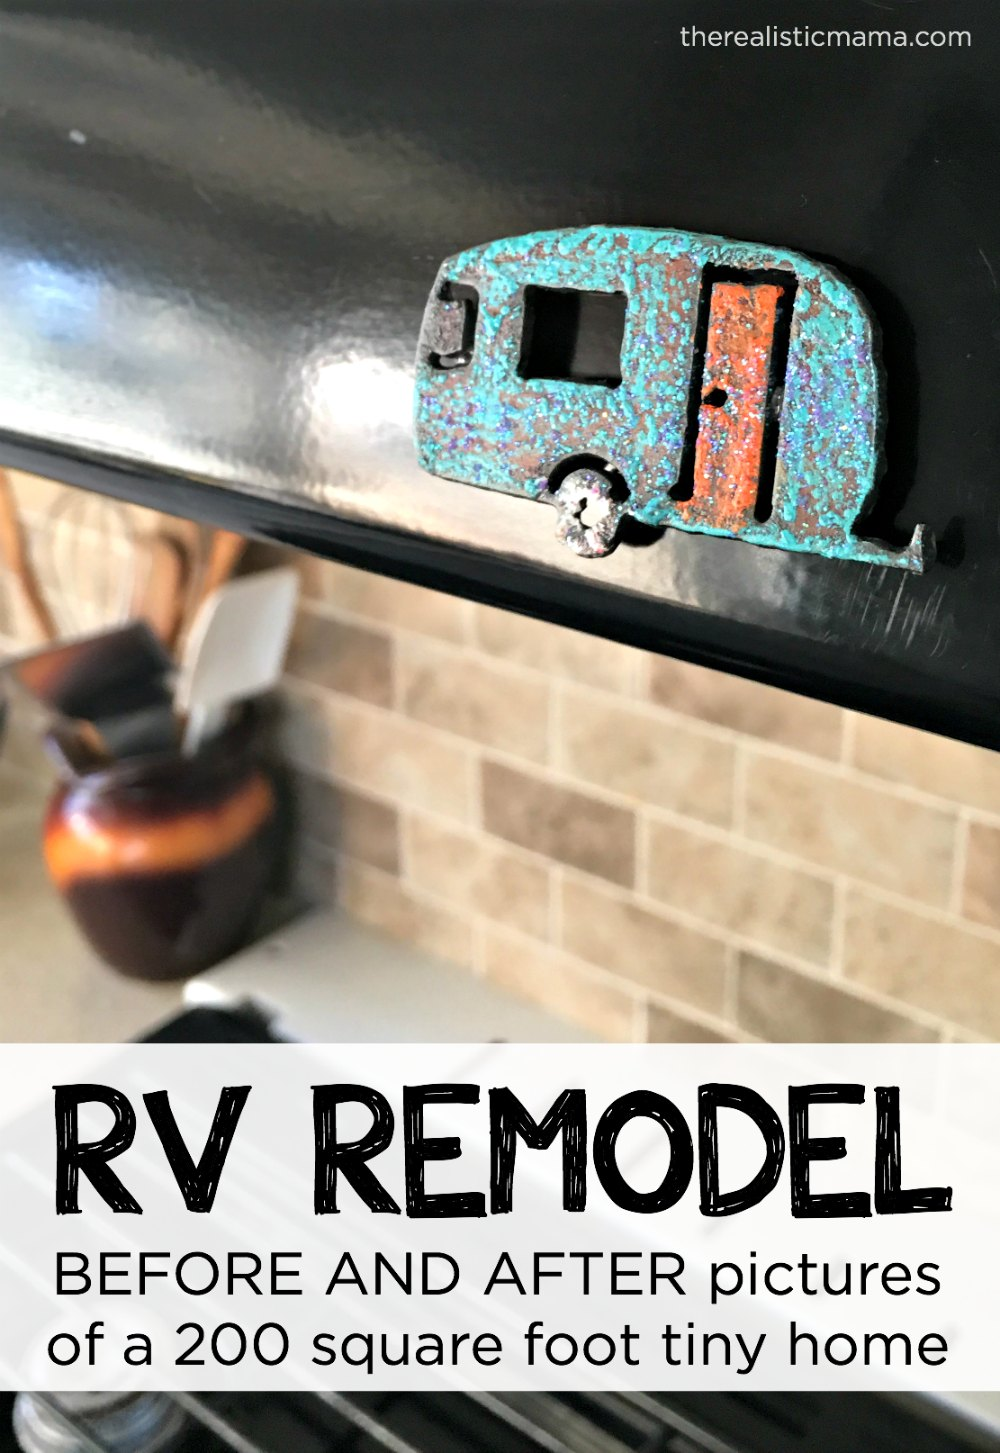 RV Remodel BEFORE & AFTER pictures